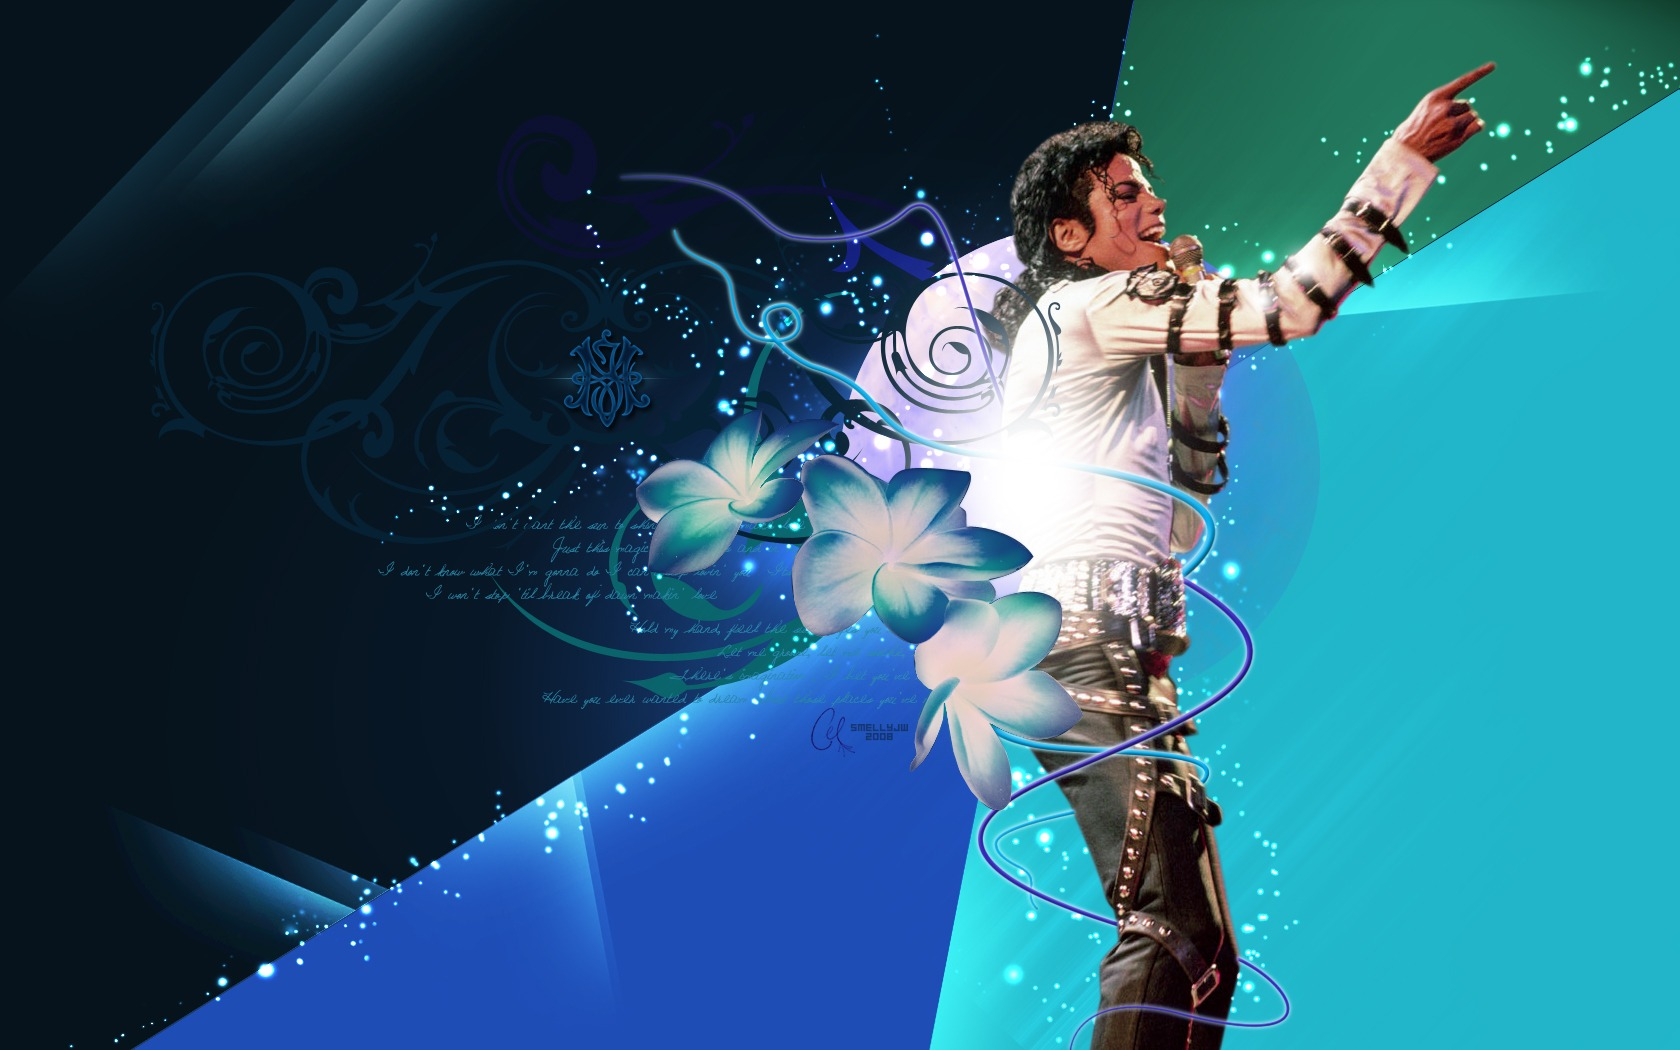 michael jackson 3 wallpapers | michael jackson 3 stock photos